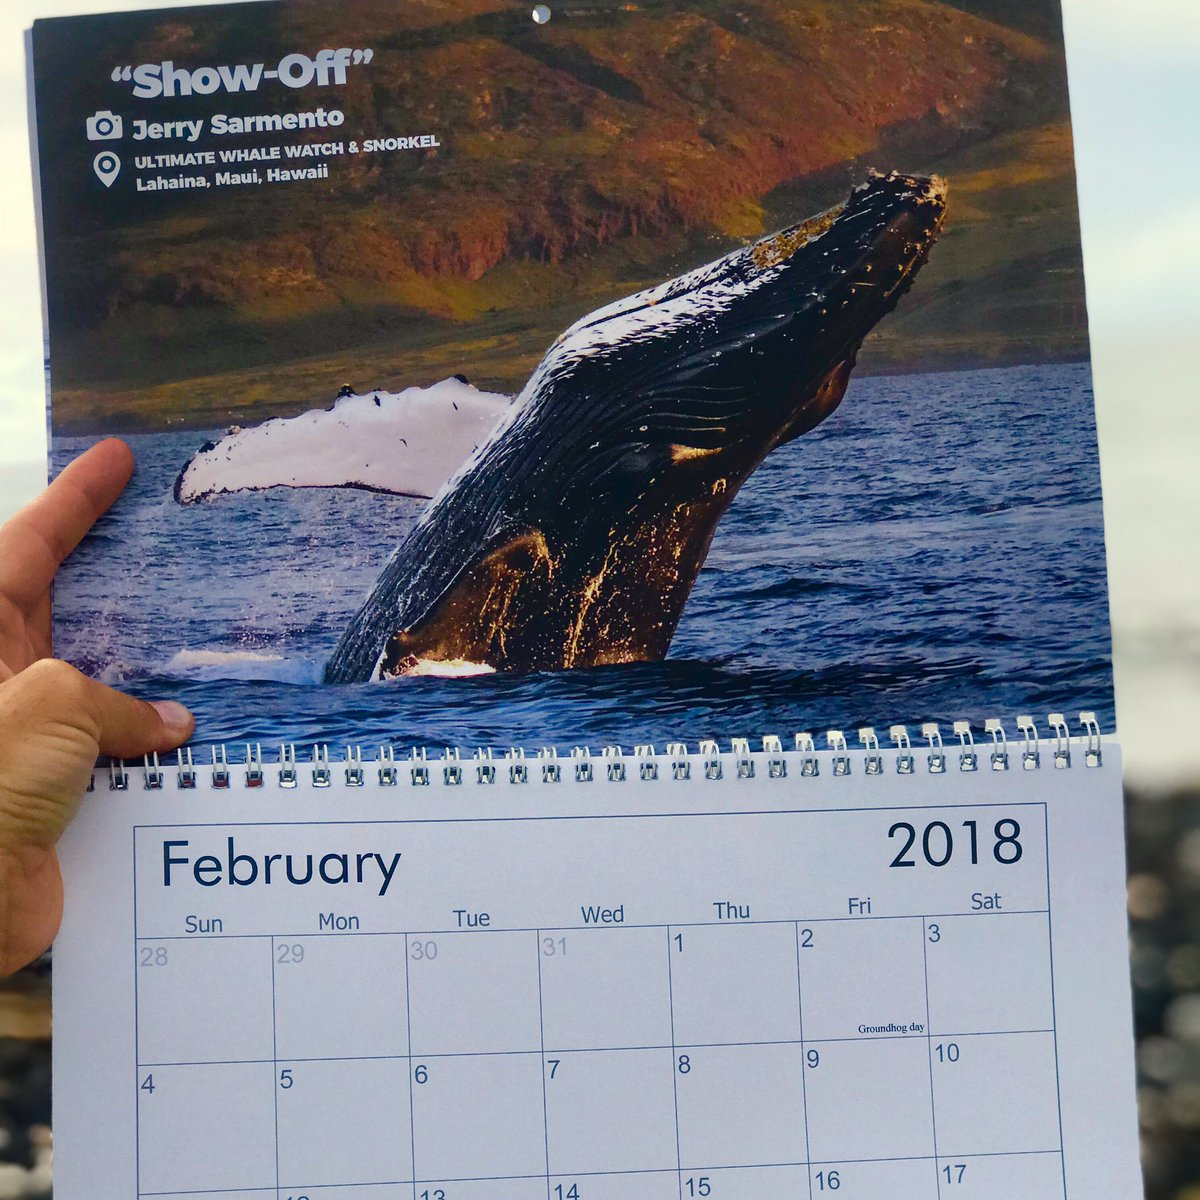 🎉CONTEST TIME! 🎉 it's time for our 2019 Whale Watching Calendar but we need your help! 👉🏾We are using YOUR PHOTOS and the winner of the cover photo will win 4 WHALE WATCH PASSES! Check out our Facebook page for info on how to enter! #contest #whalewatch #photography